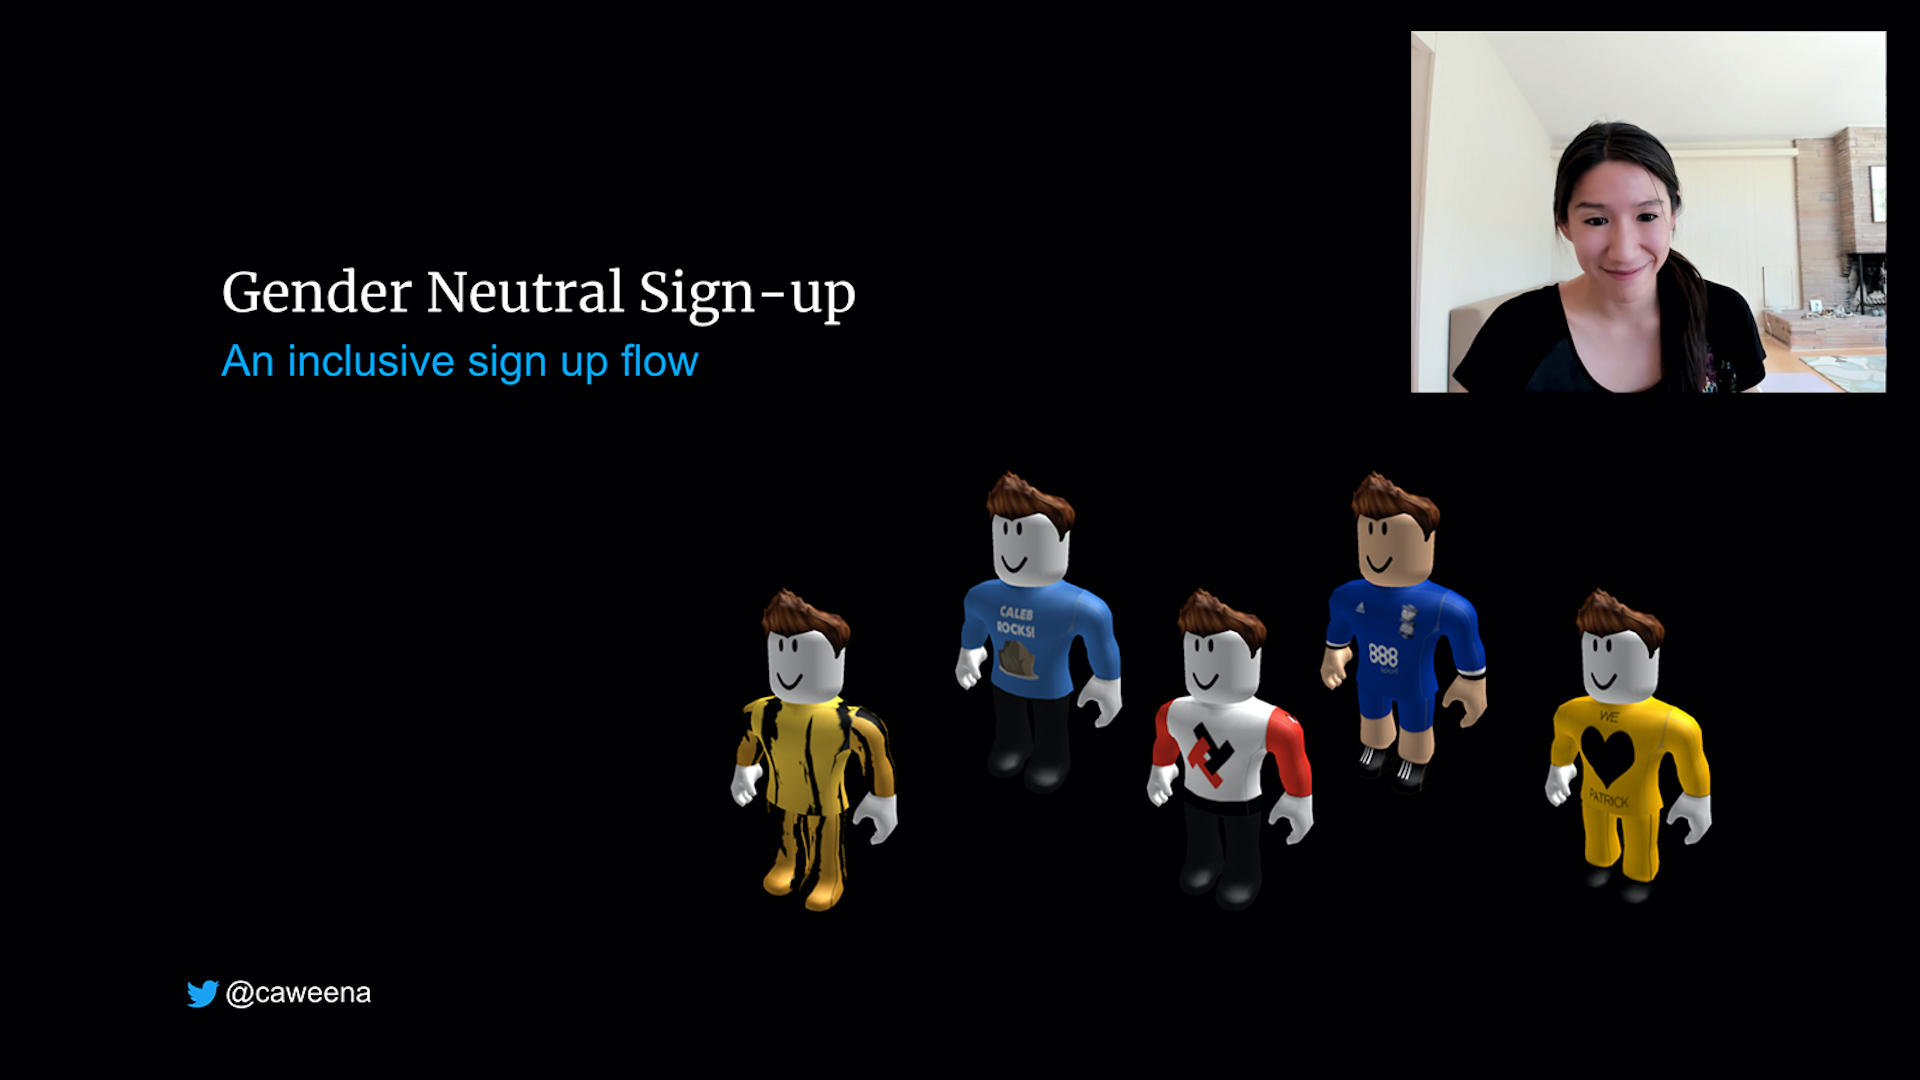 Carina Ngai appeared next to Roblox figures on a black background with